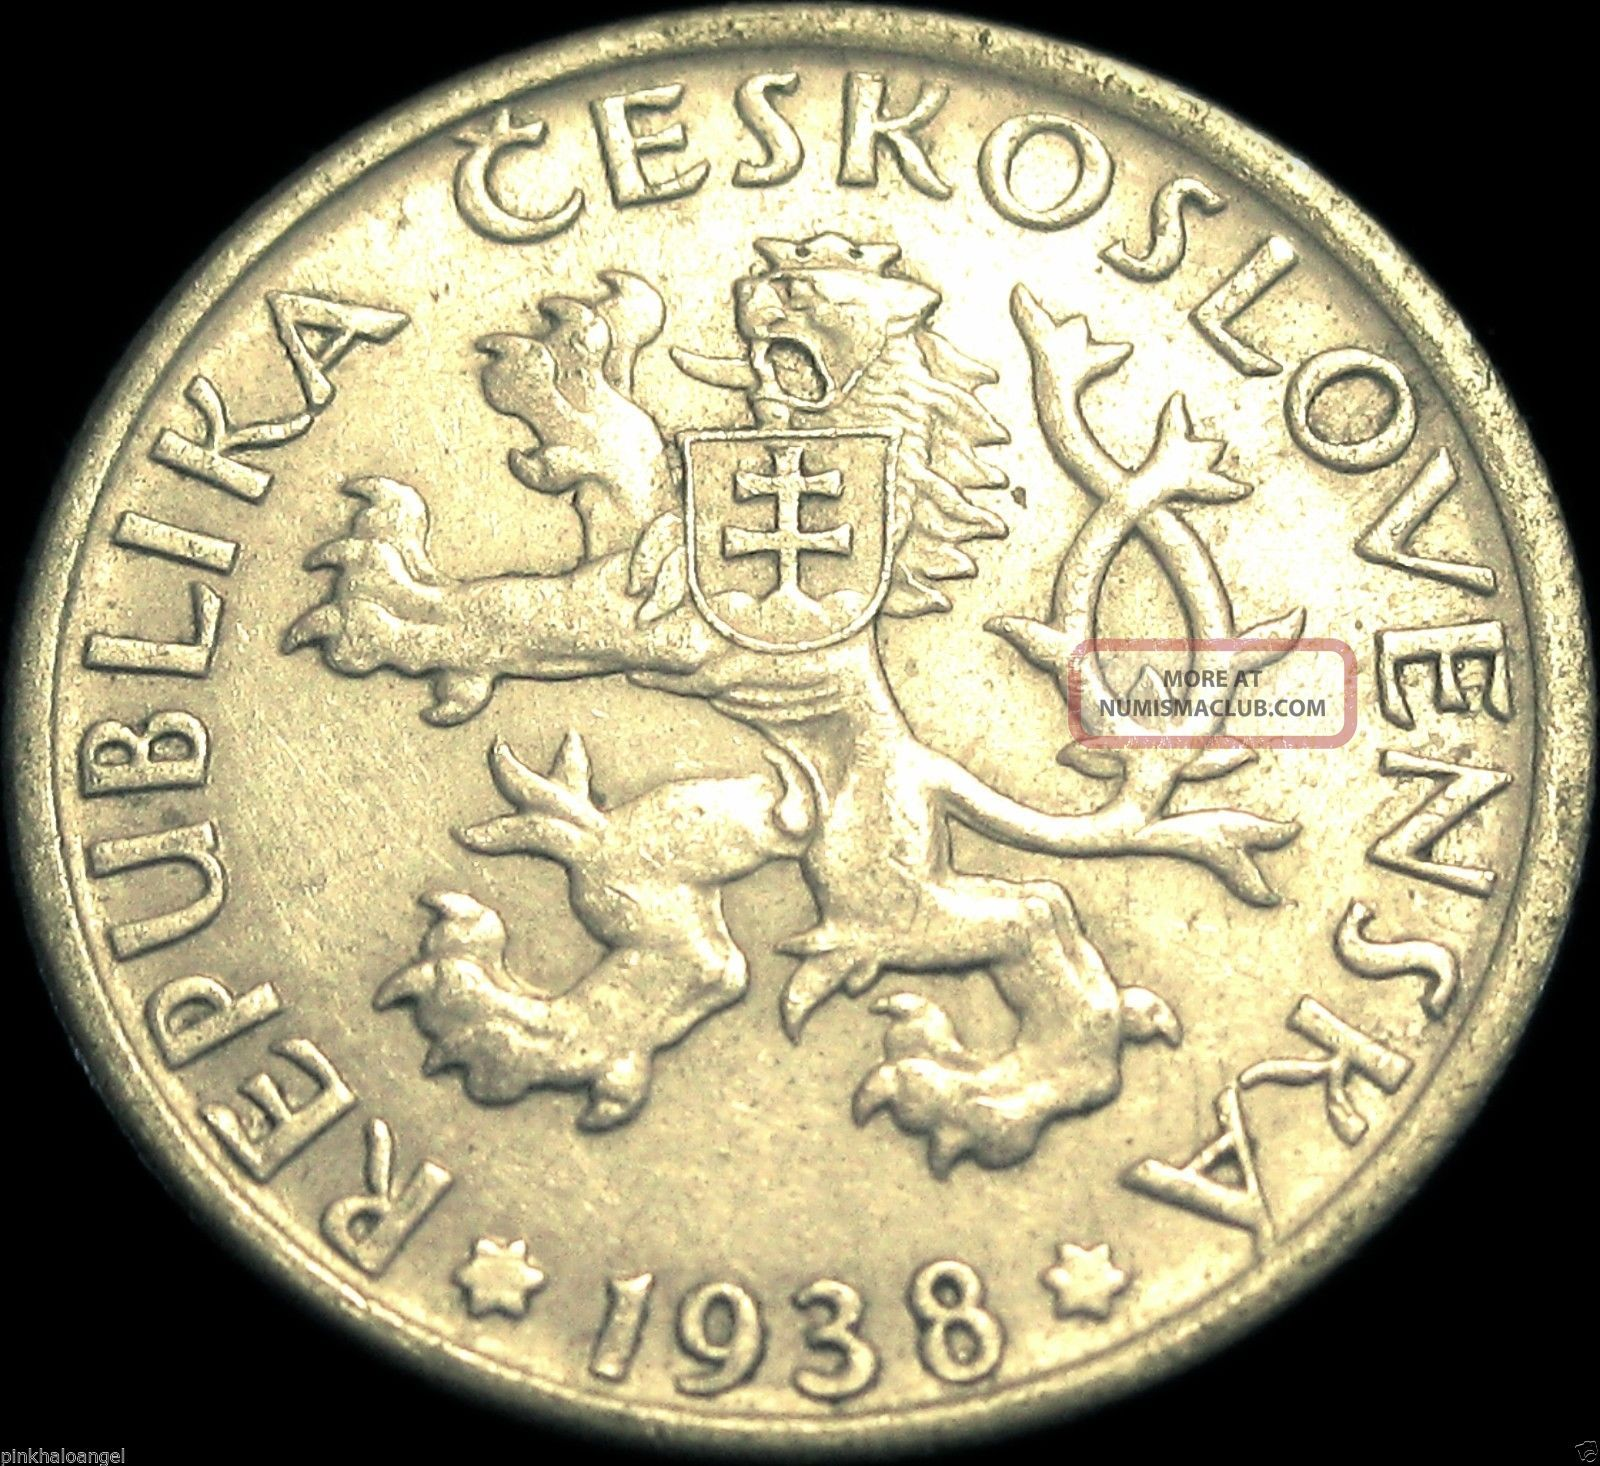 Czechoslovakia - Czechoslovakian 1938 Koruna Coin - Rare Rampant Lion Europe photo